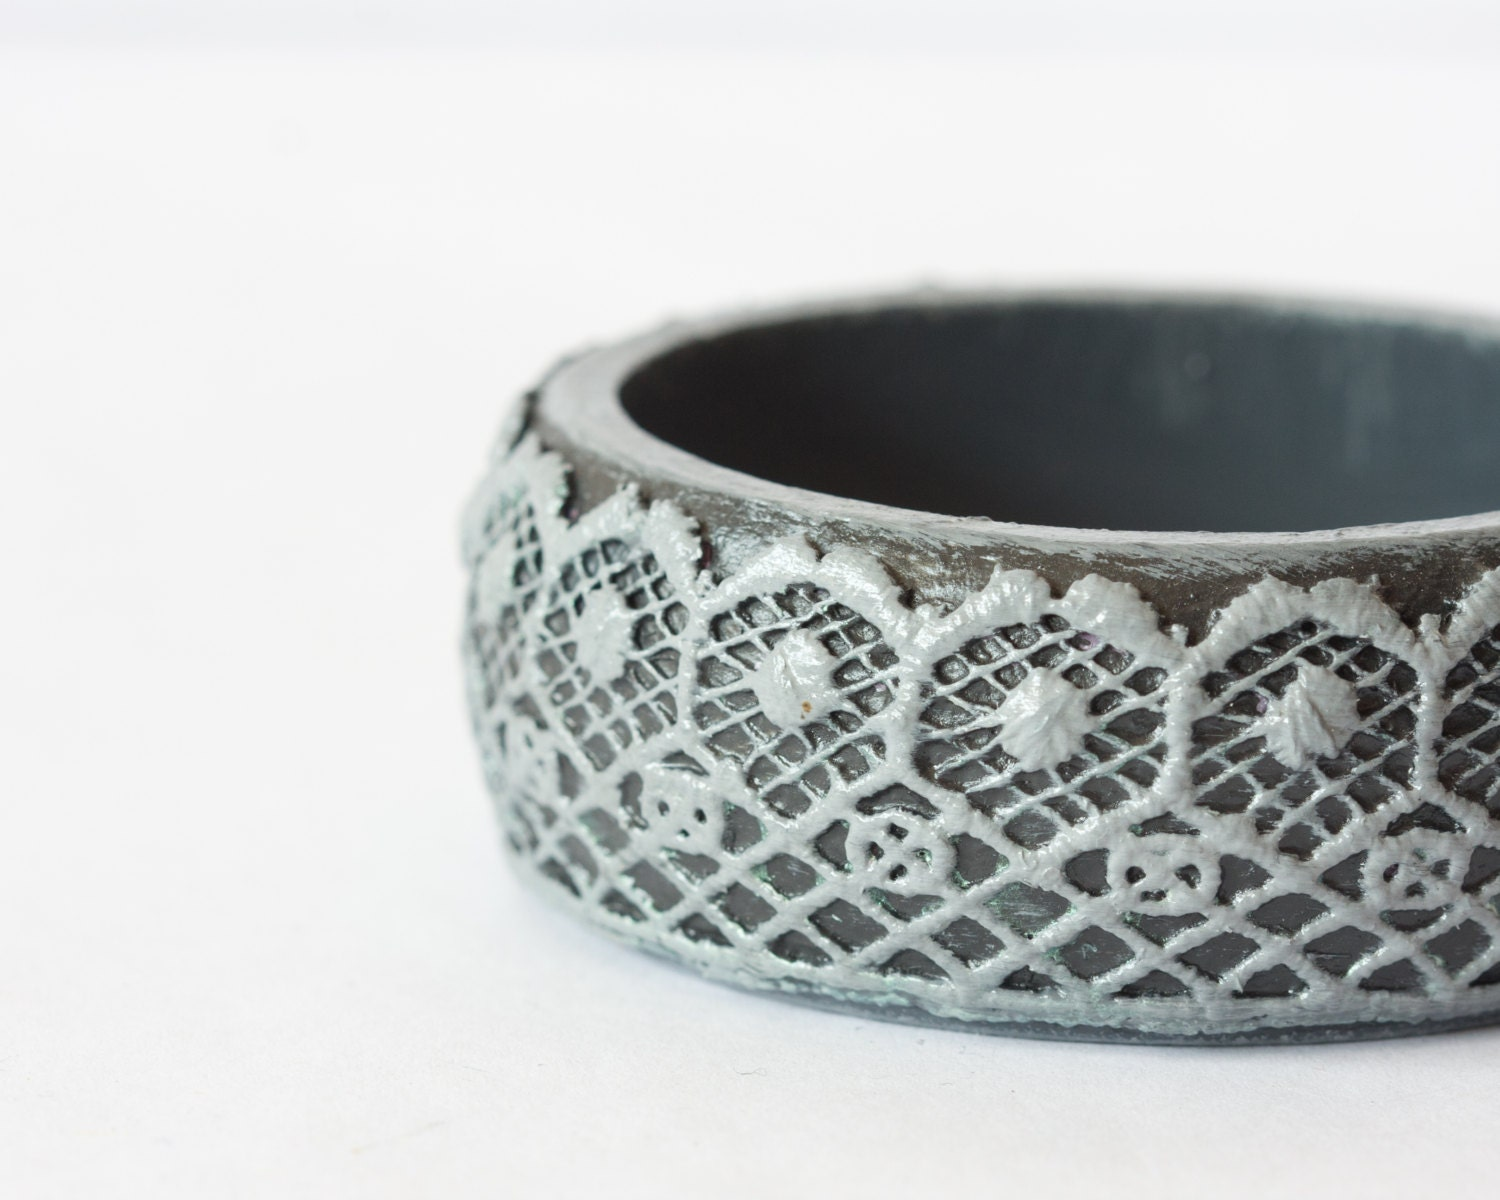 Titanium Lace Bangle, Black Grey Bracelet, Relief Victorian Lace Cuff / Romantic Gift for Her / Coworker Gift Idea ohtteam - BeauMiracle